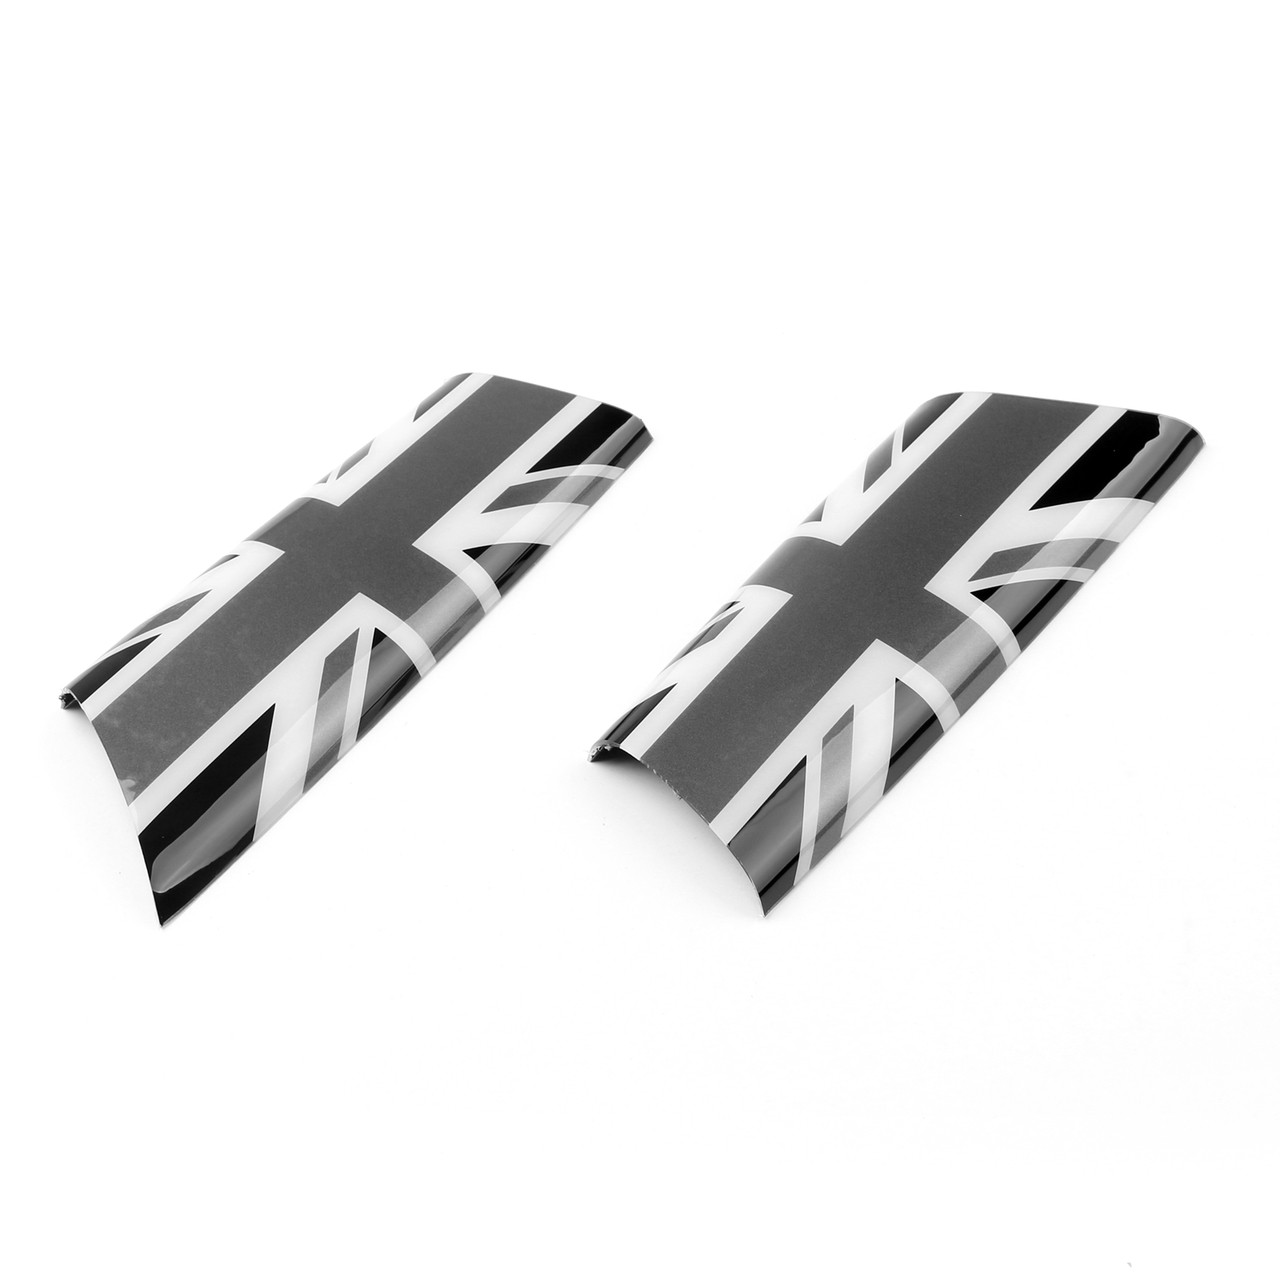 Door Pull Handle Covers Trim MINI Cooper R55 R56 R57 R58 Union Jack UK Gray